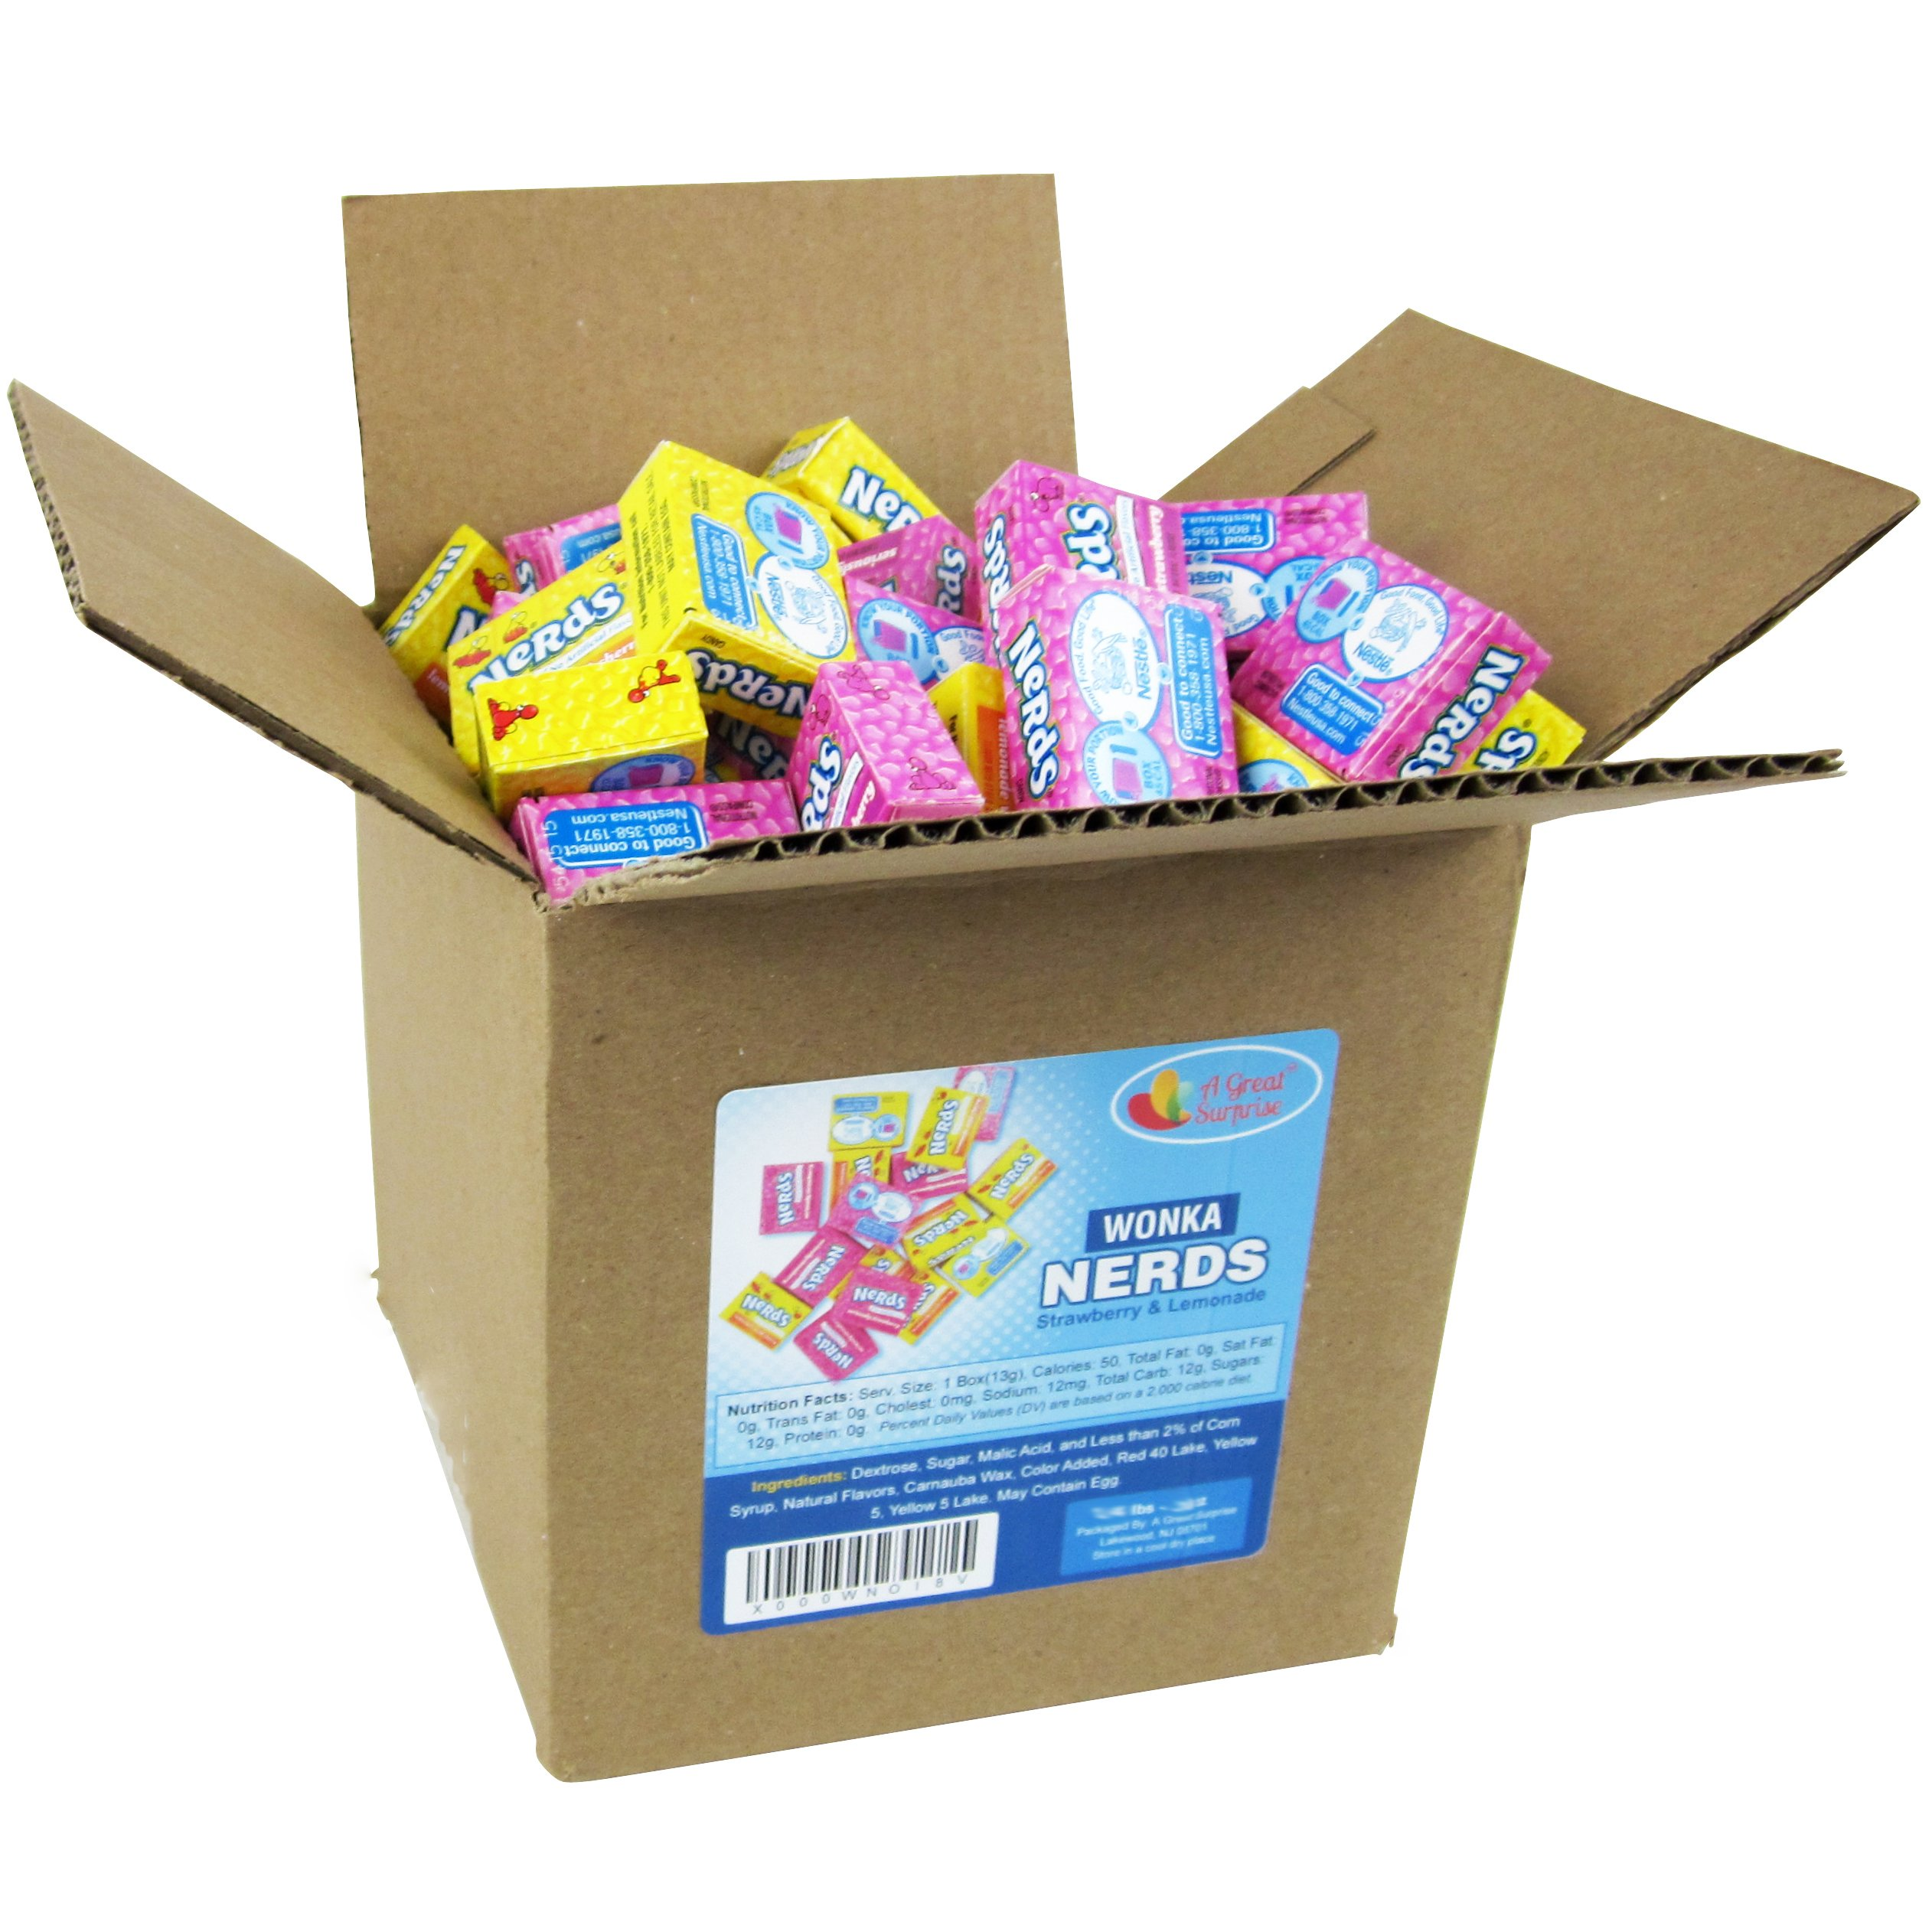 Nerds Candy - Wonka Nerds Mini Boxes, Strawberry and Lemonade Wild Cherry Assortment, 4 LB Box Bulk Candy (Approx. 100 Mini Boxes) by A Great Surprise (Image #3)